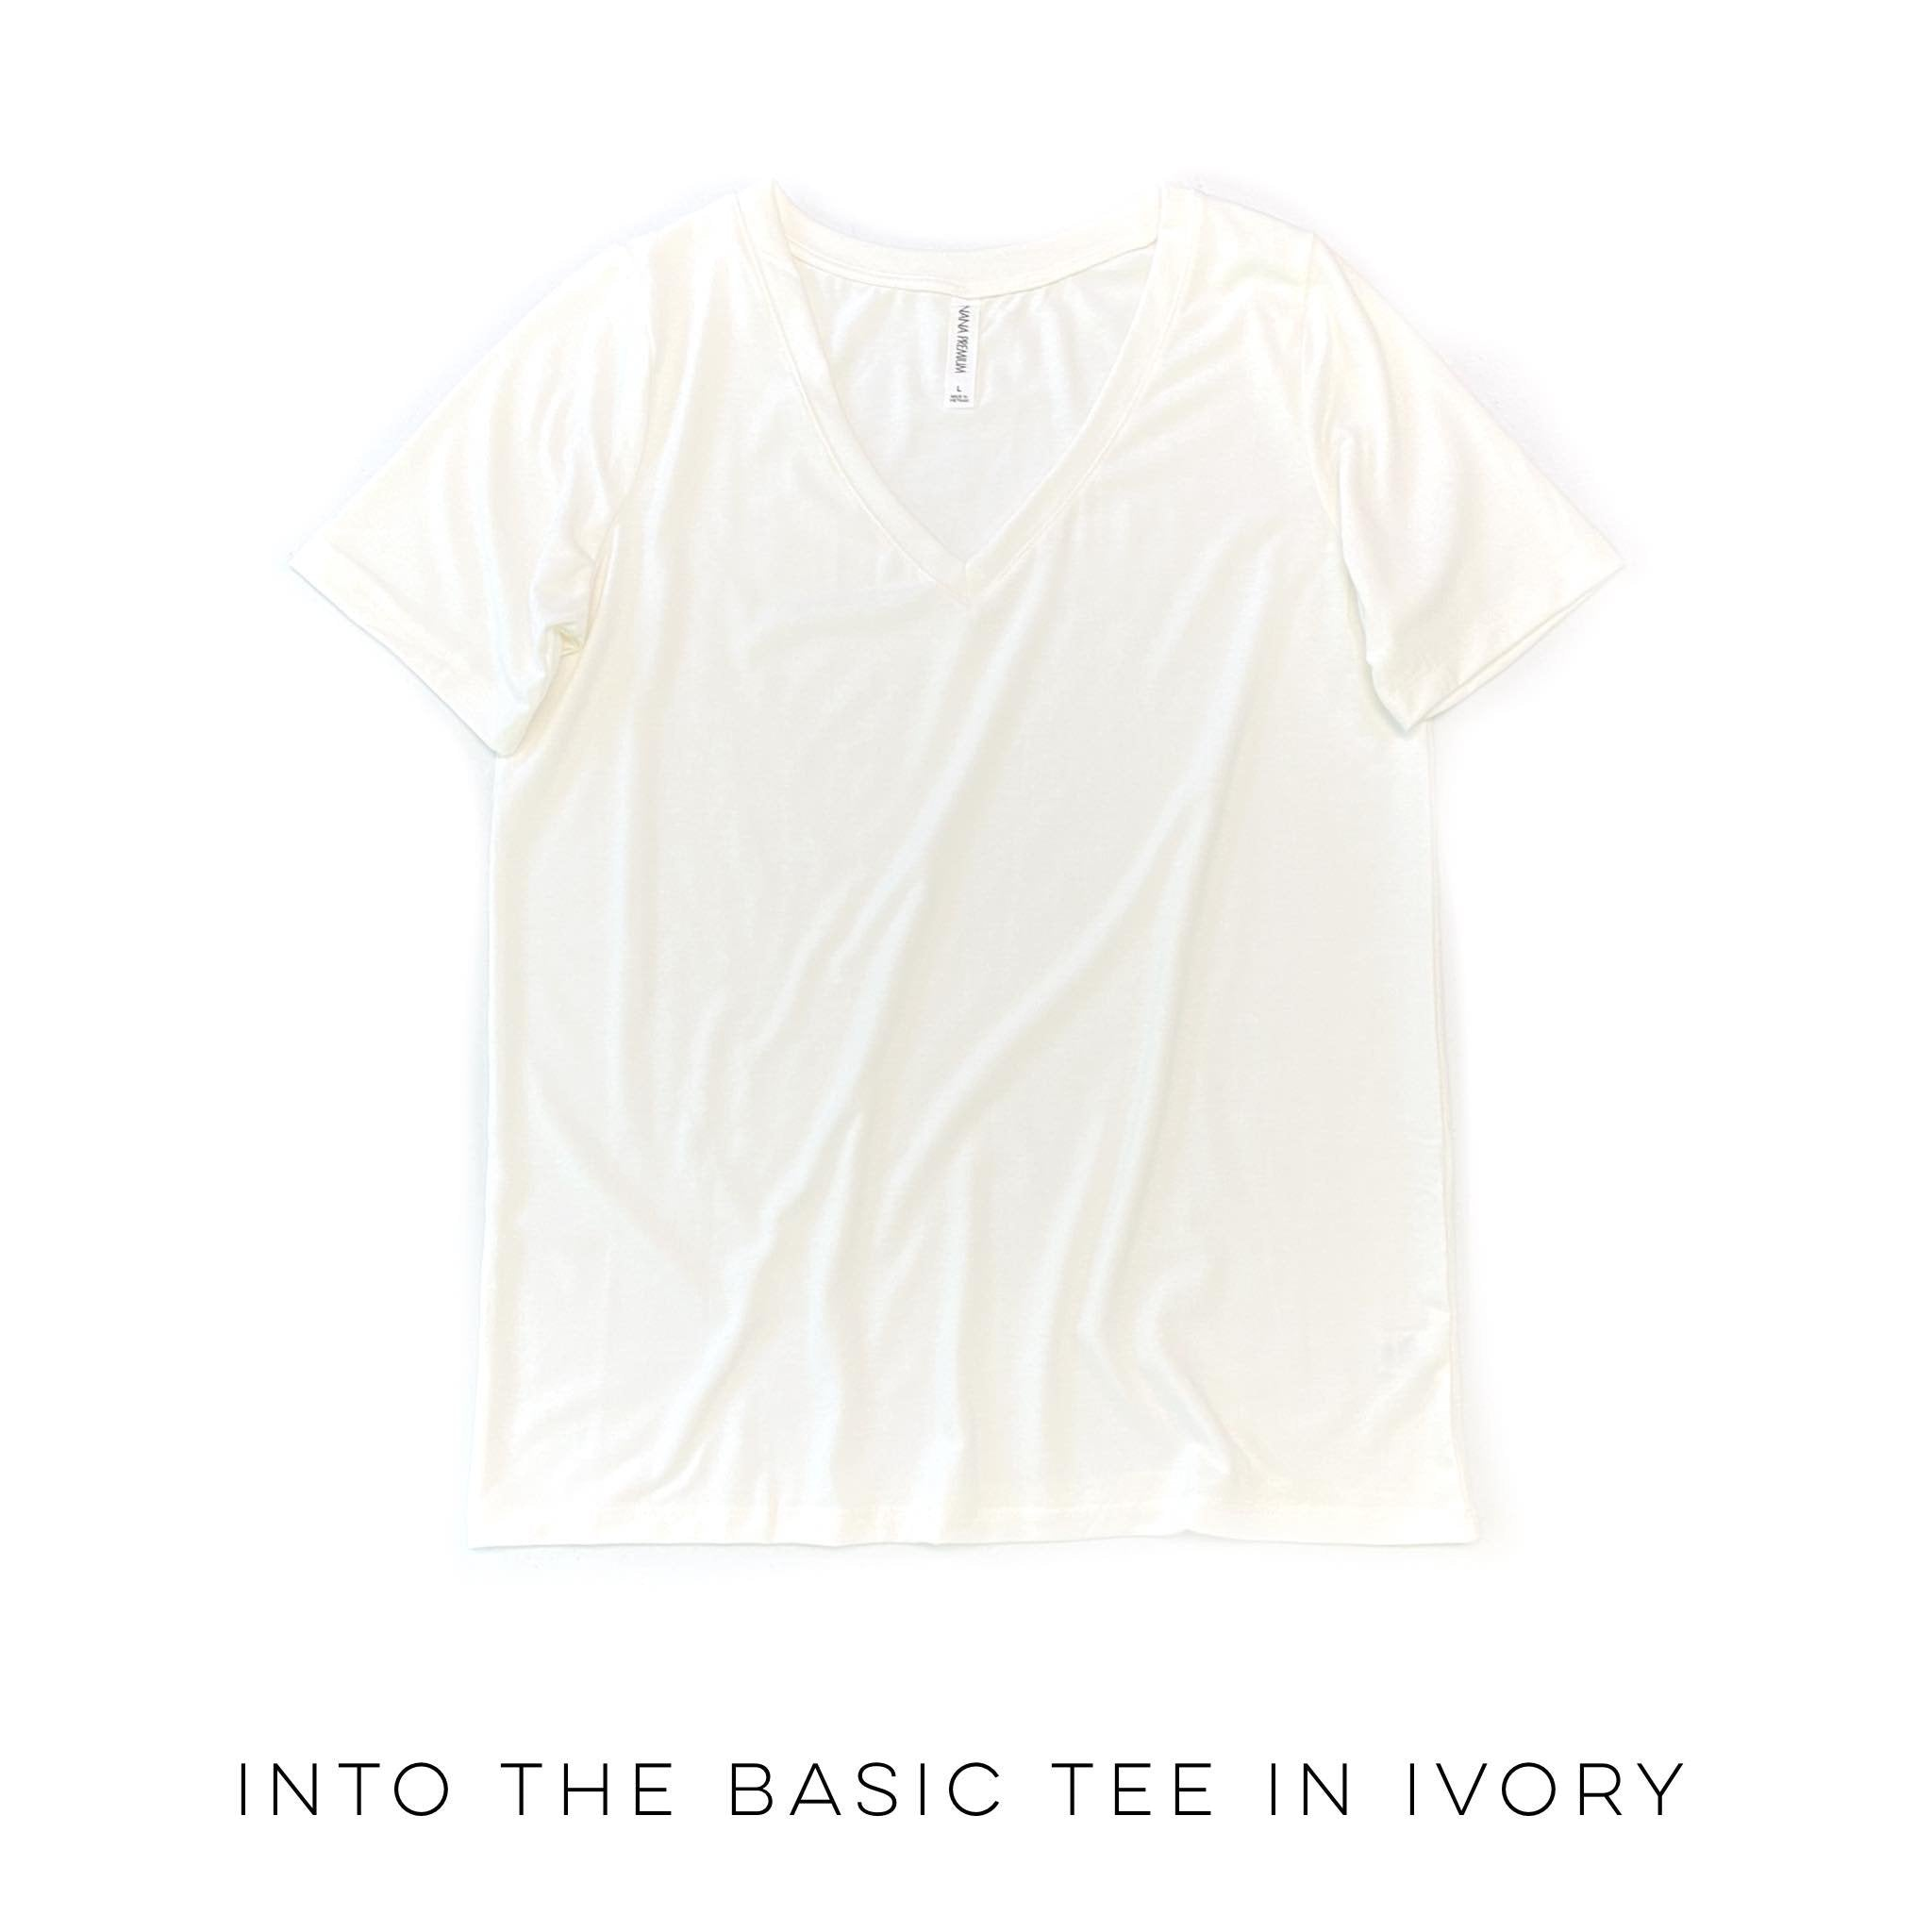 Into the Basic Tee in Ivory